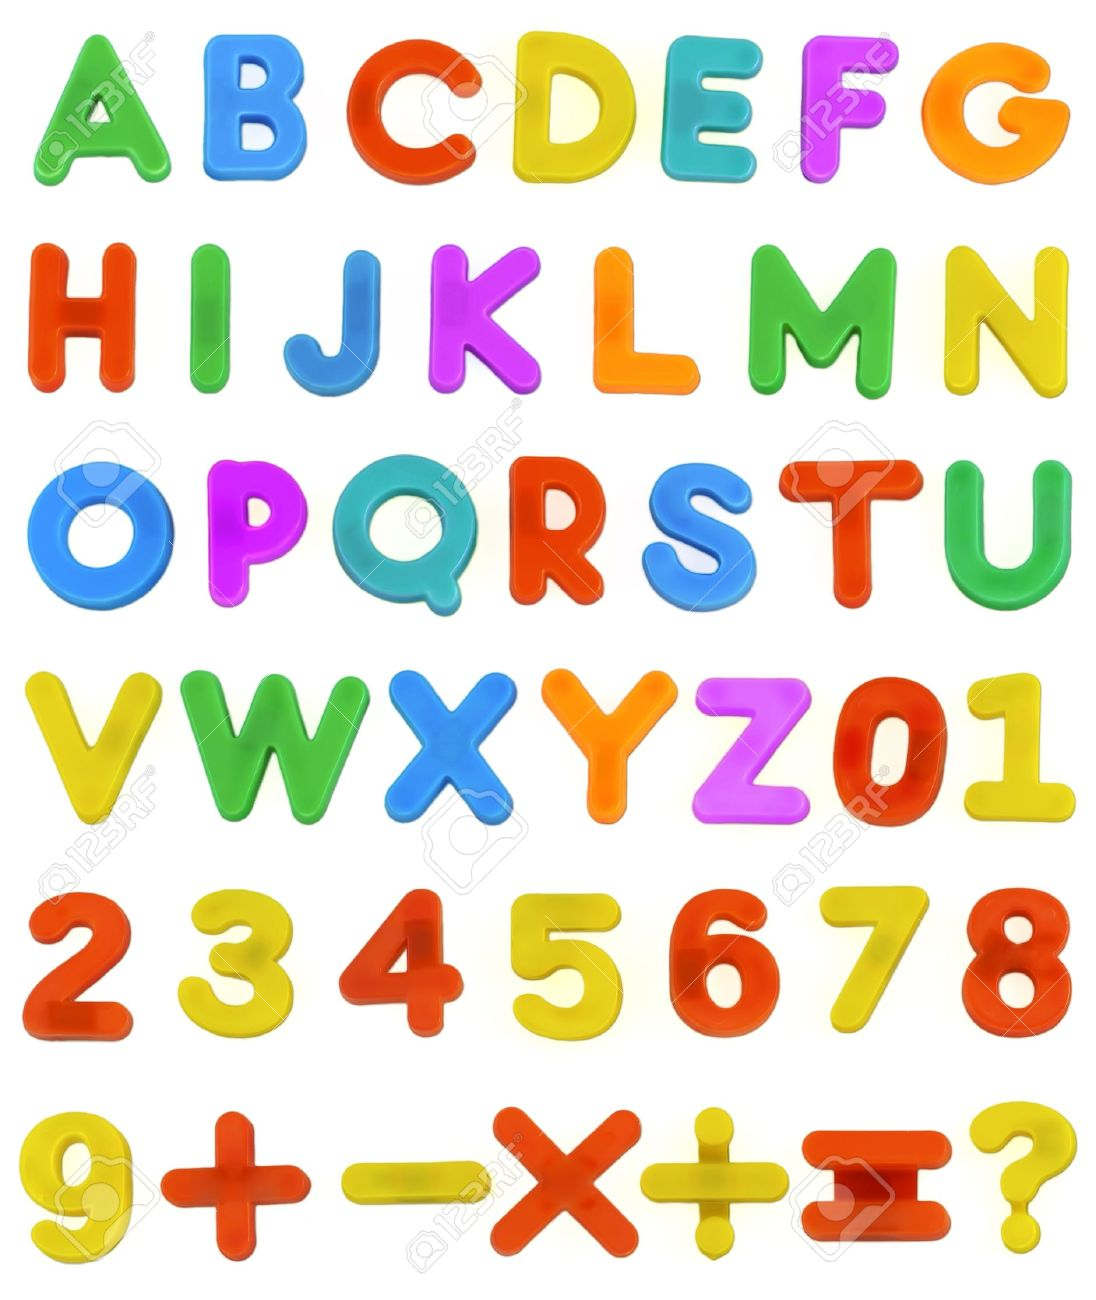 A Child's Magnetic Plastic ABC Letters Laid Out Alphabetically.